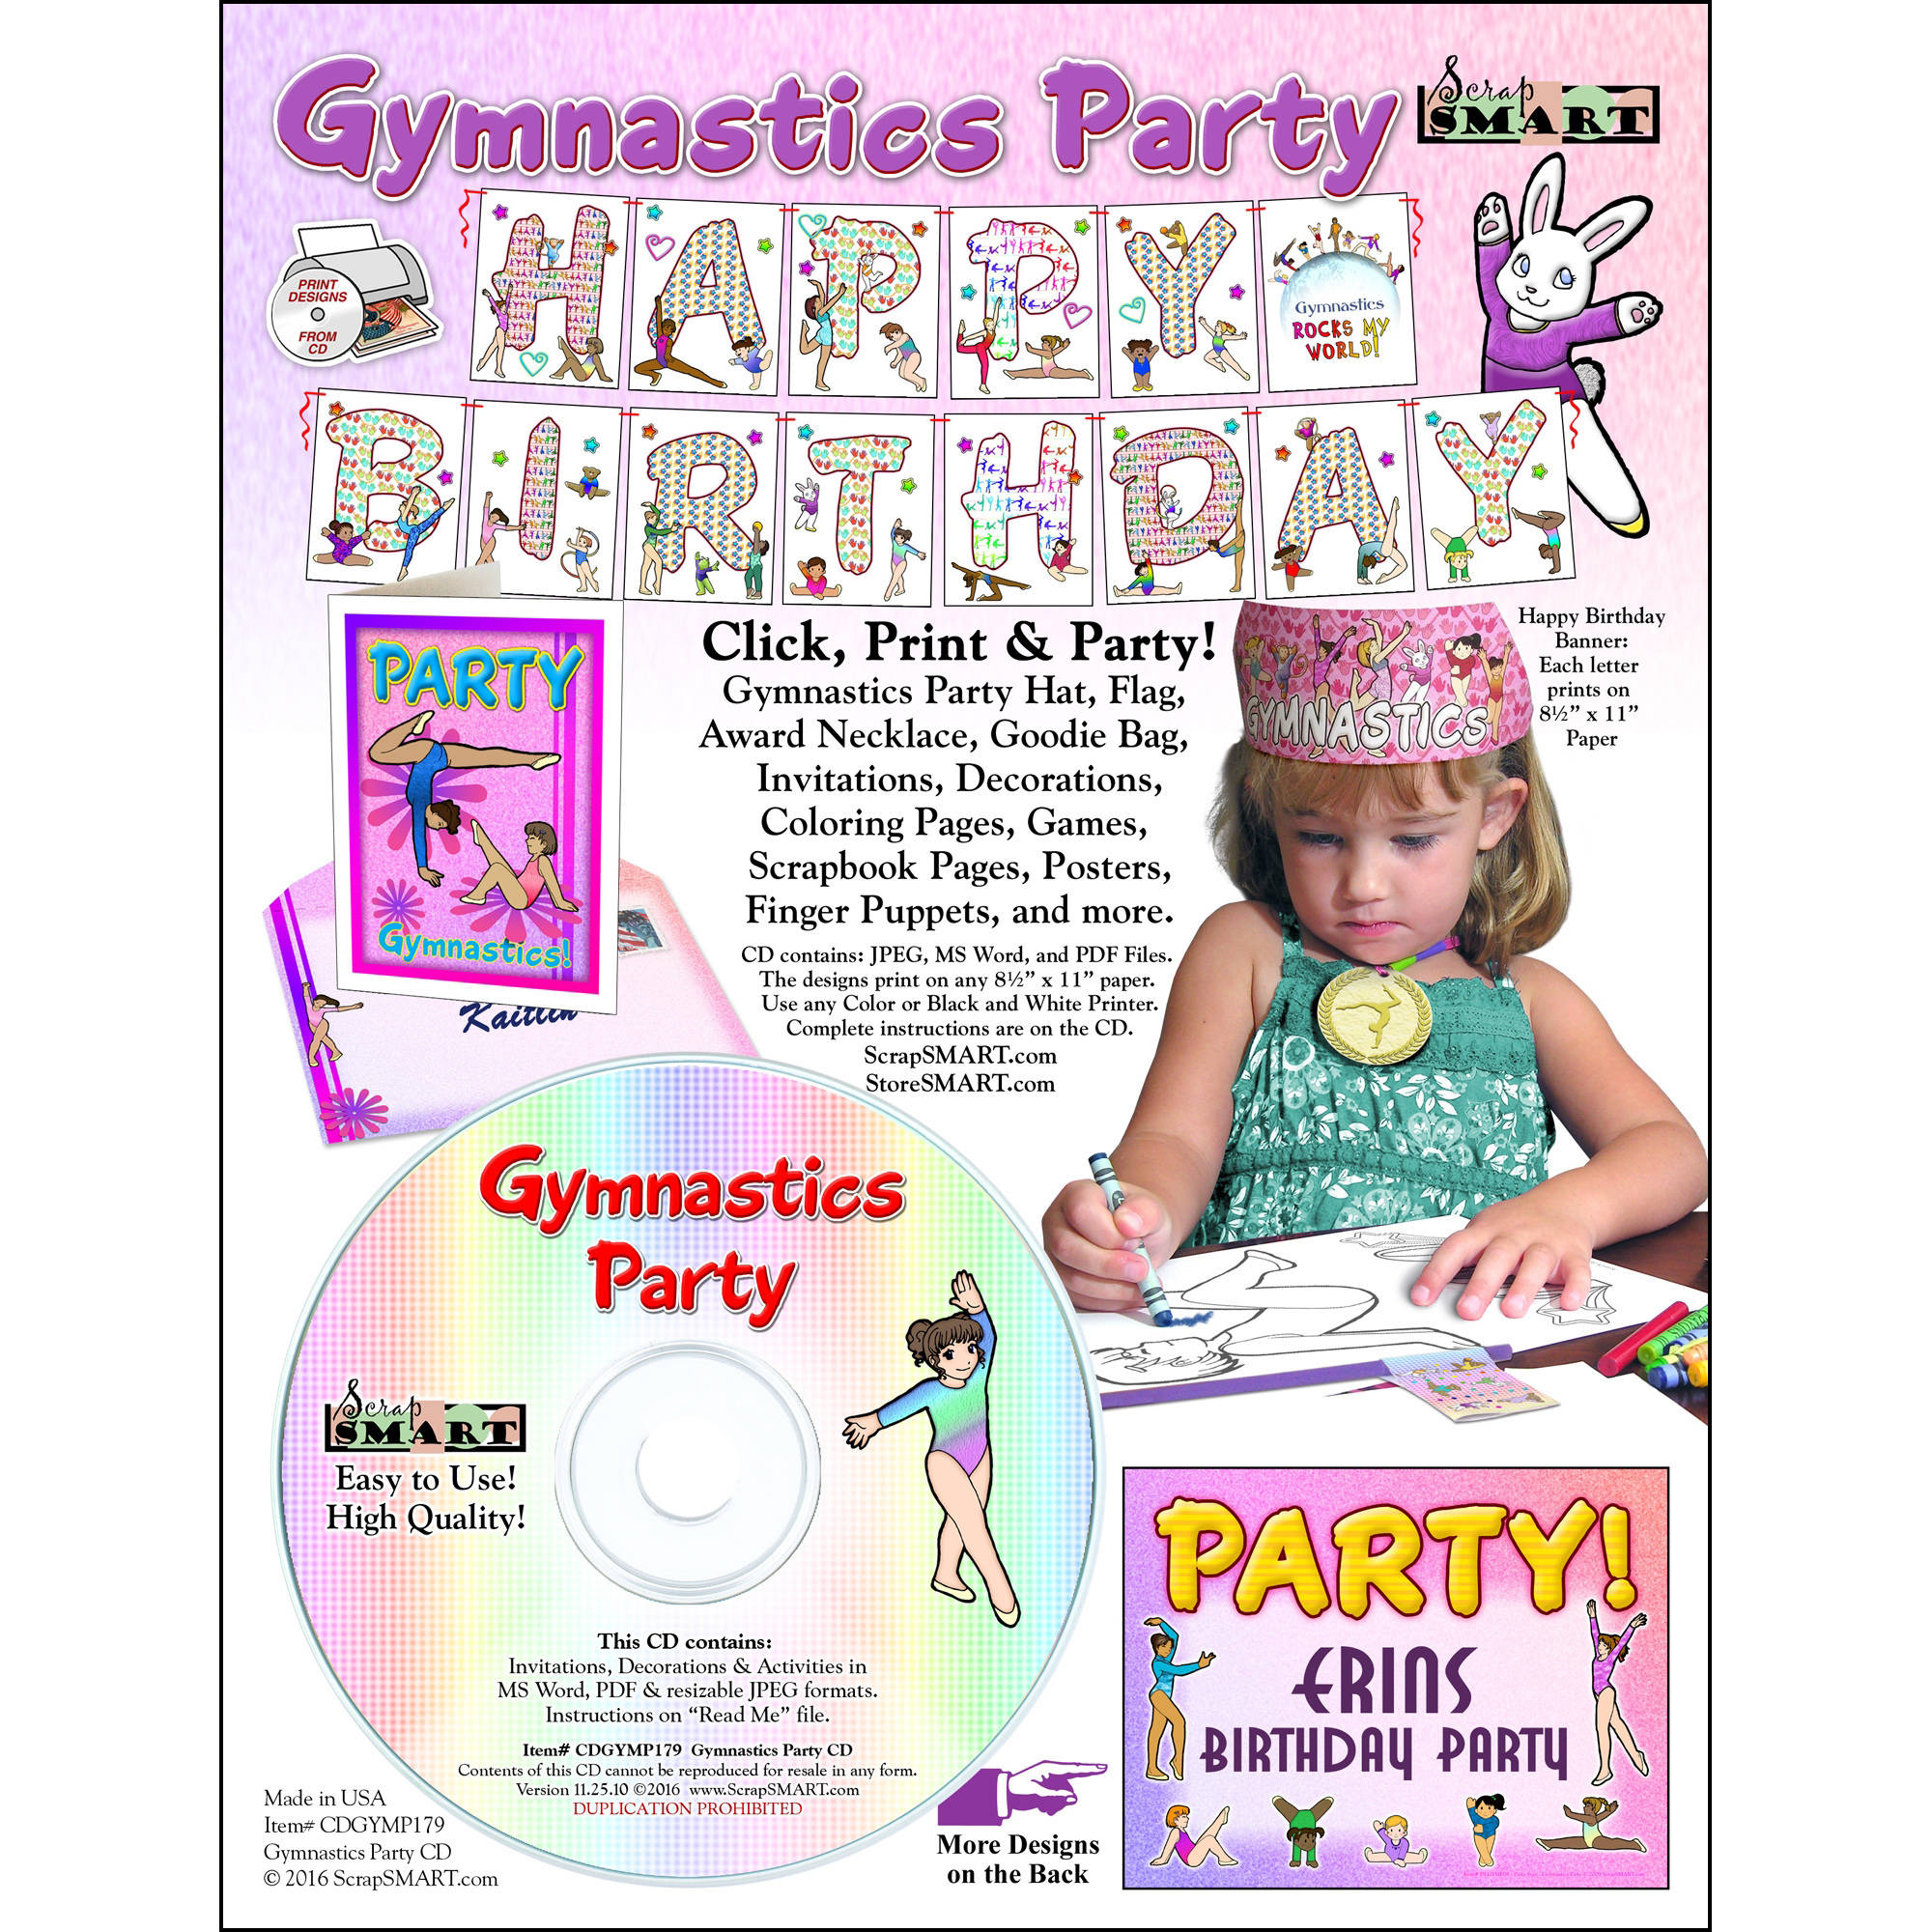 ScrapSMART Gymnastics Party: Decorations, Crafts, Scrapbook and Coloring Pages CD-ROM